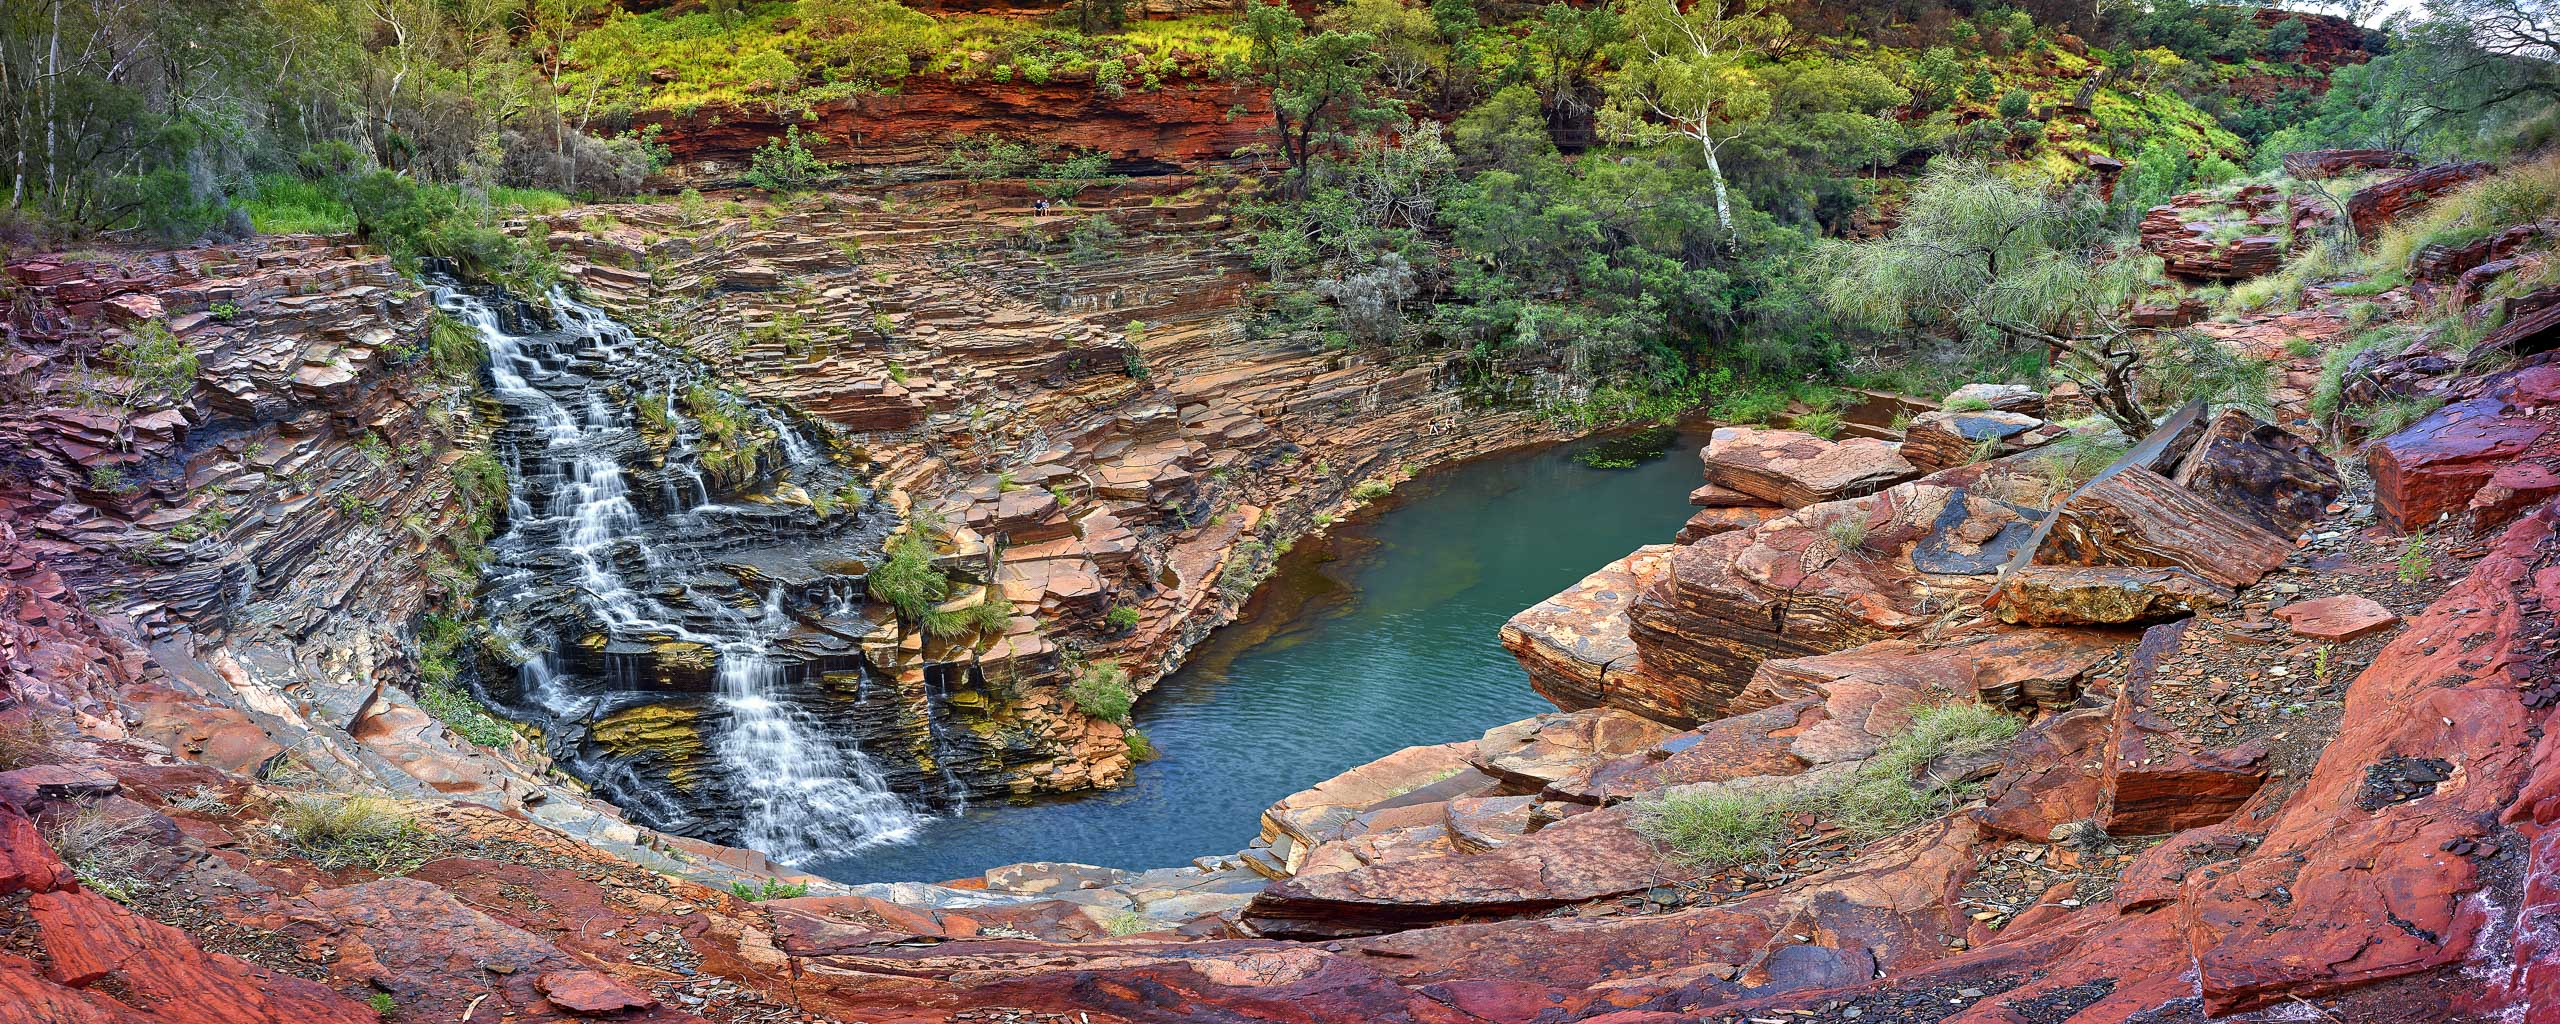 Fortescue Falls, Karijini National Park, WA, Australia.